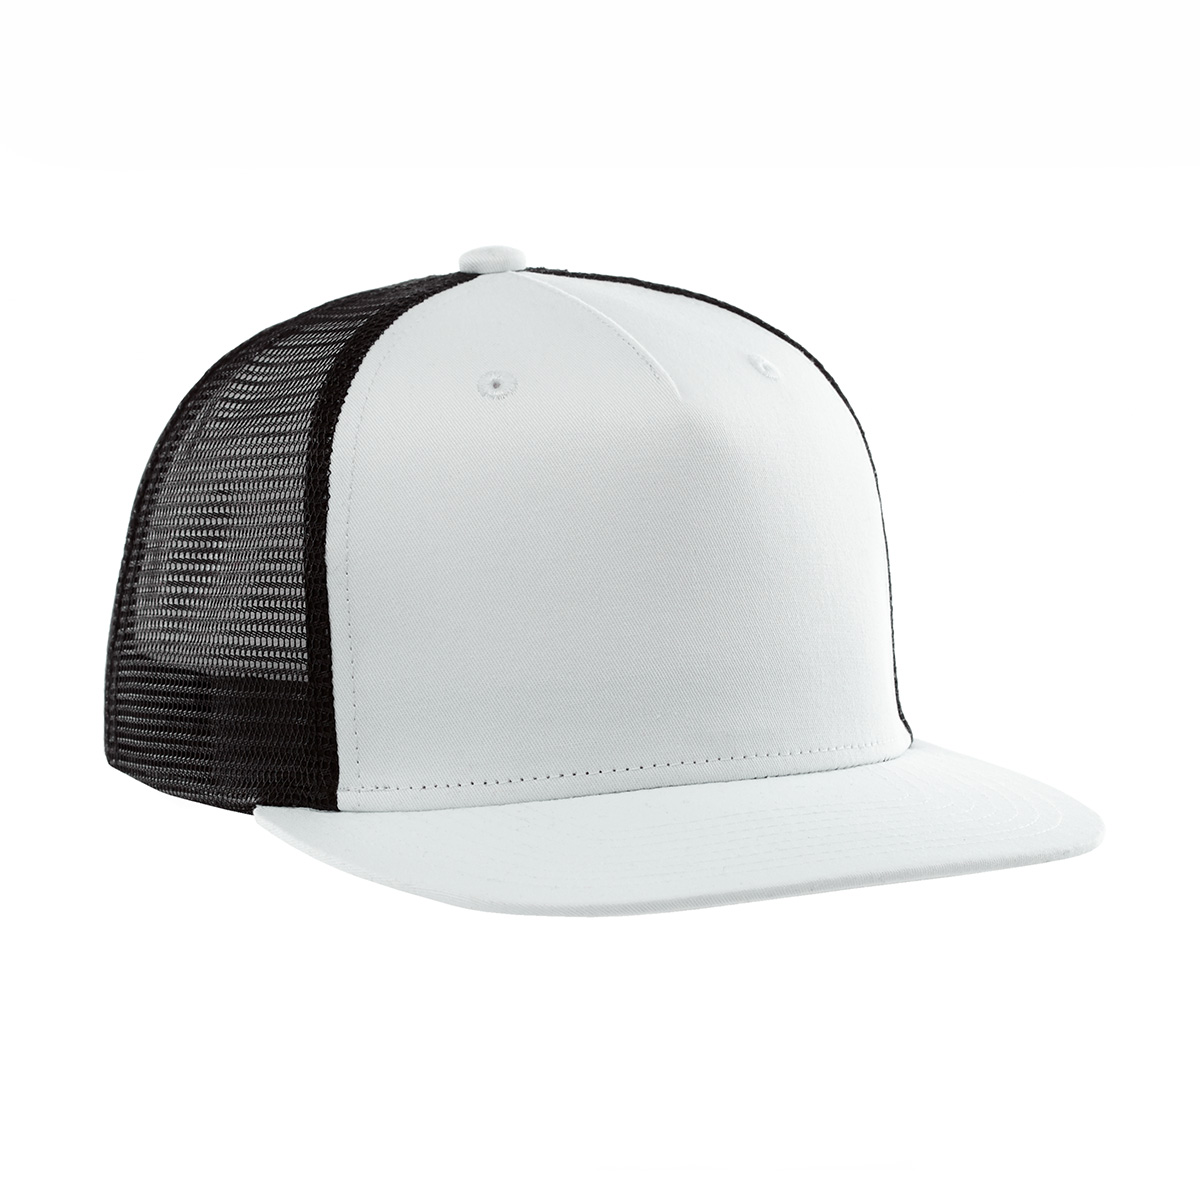 Surge Ballcap, #32028 - Embroidered